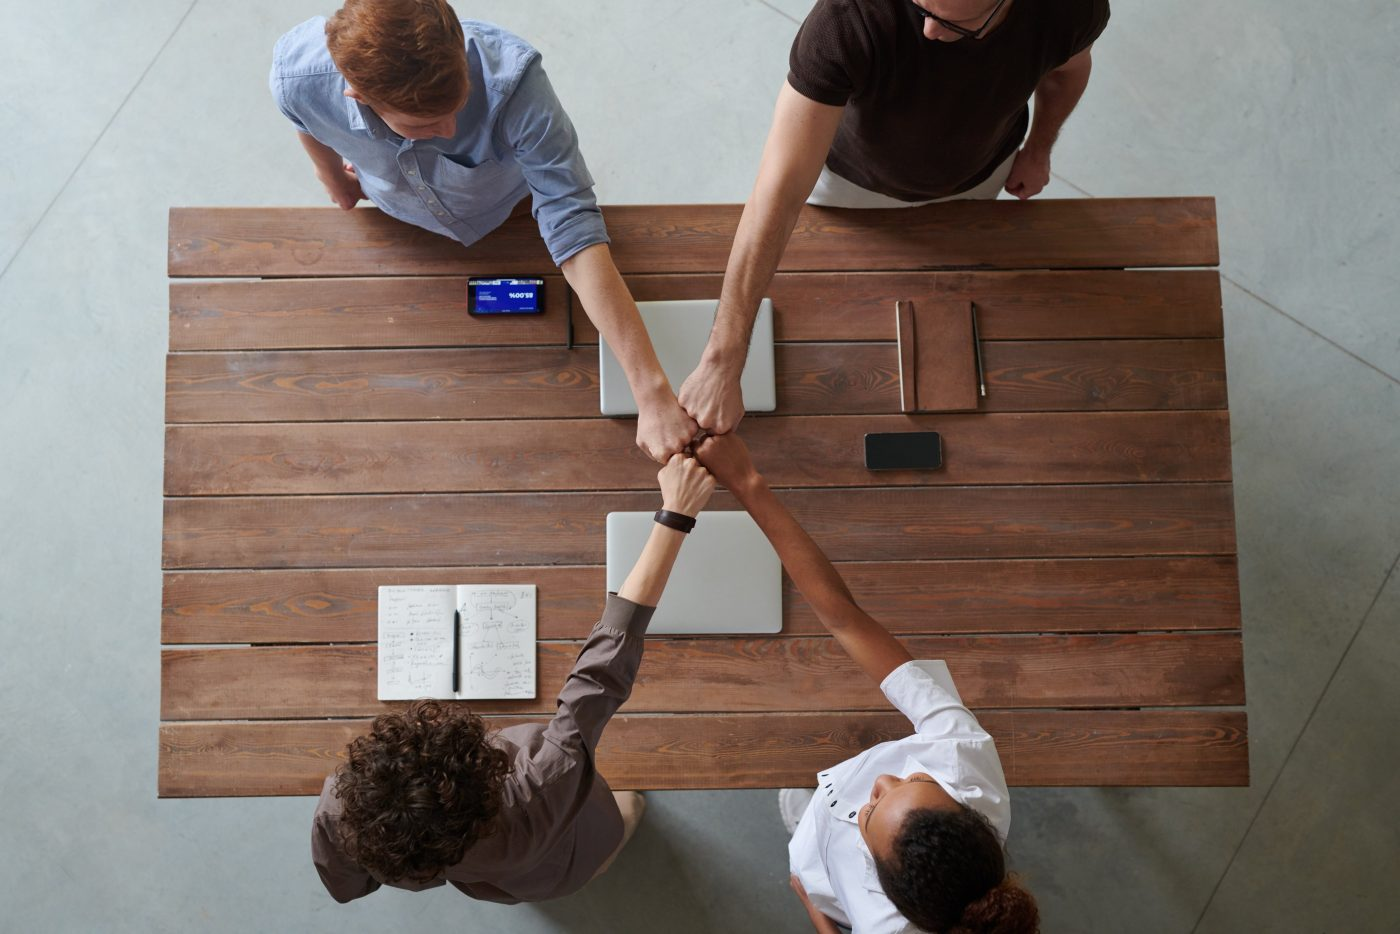 Four people fist bump over table of desk work